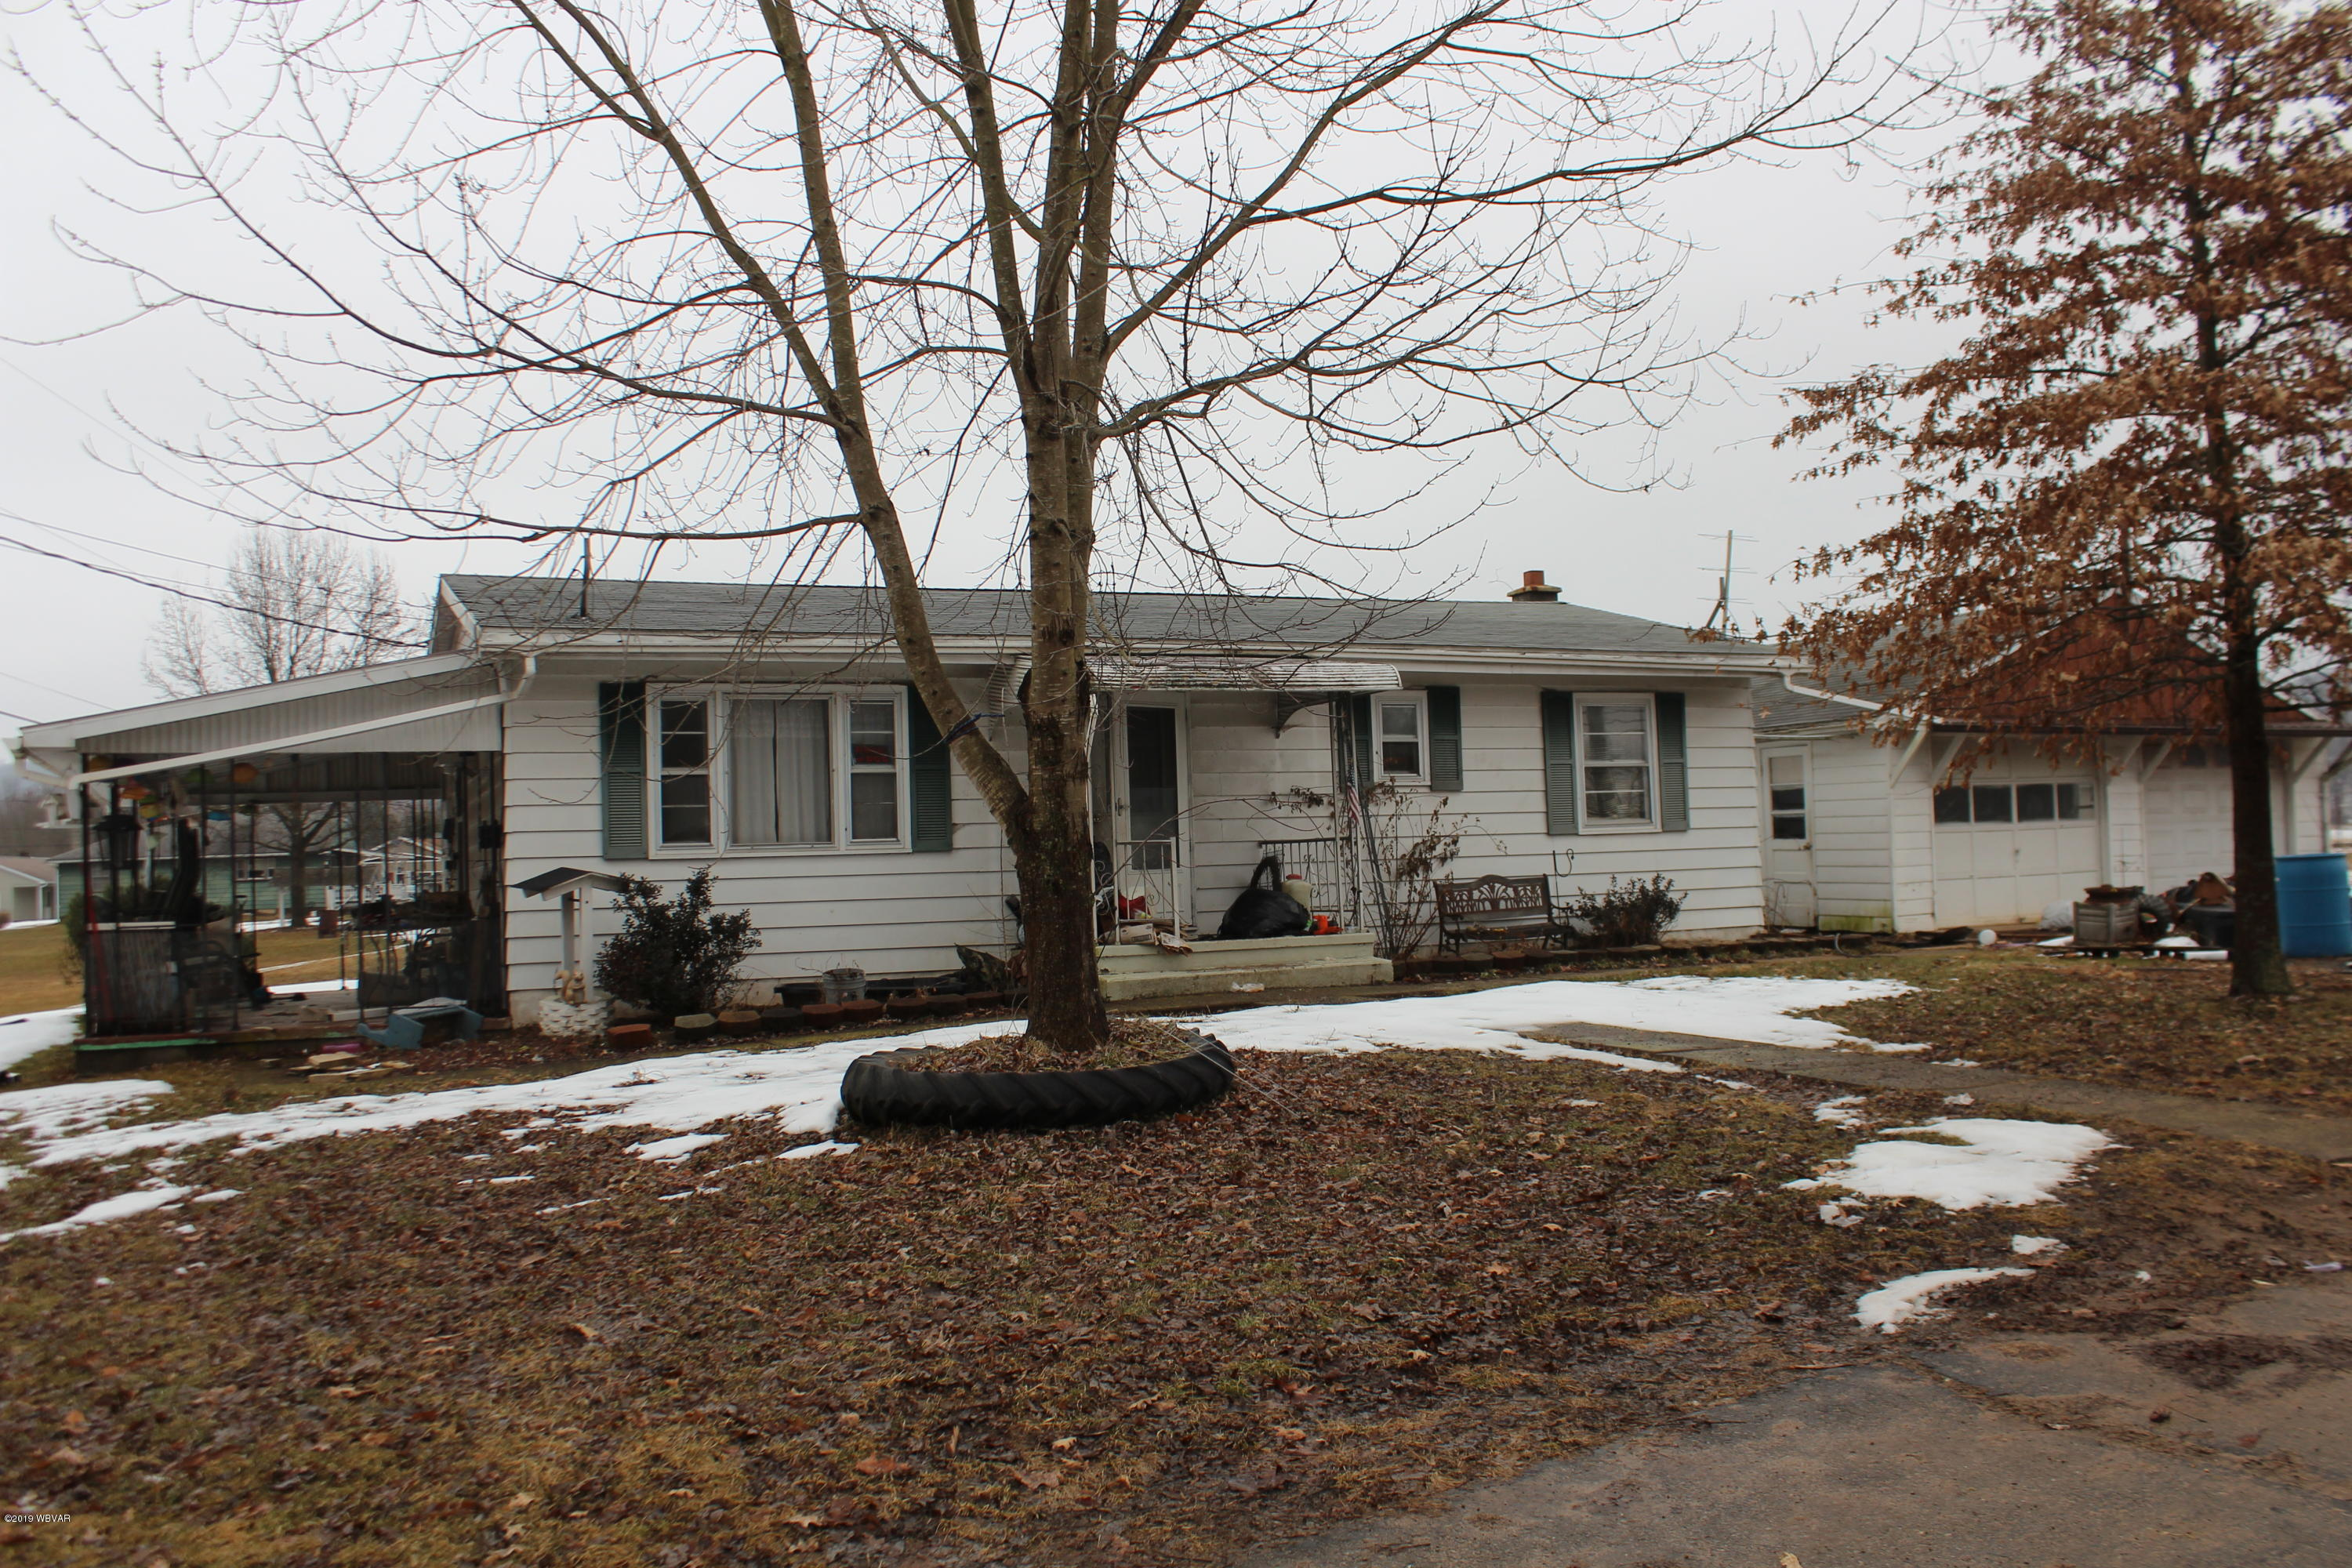 403 ROUTE 118 HIGHWAY,Hughesville,PA 17737,3 Bedrooms Bedrooms,1 BathroomBathrooms,Residential,ROUTE 118,WB-86668